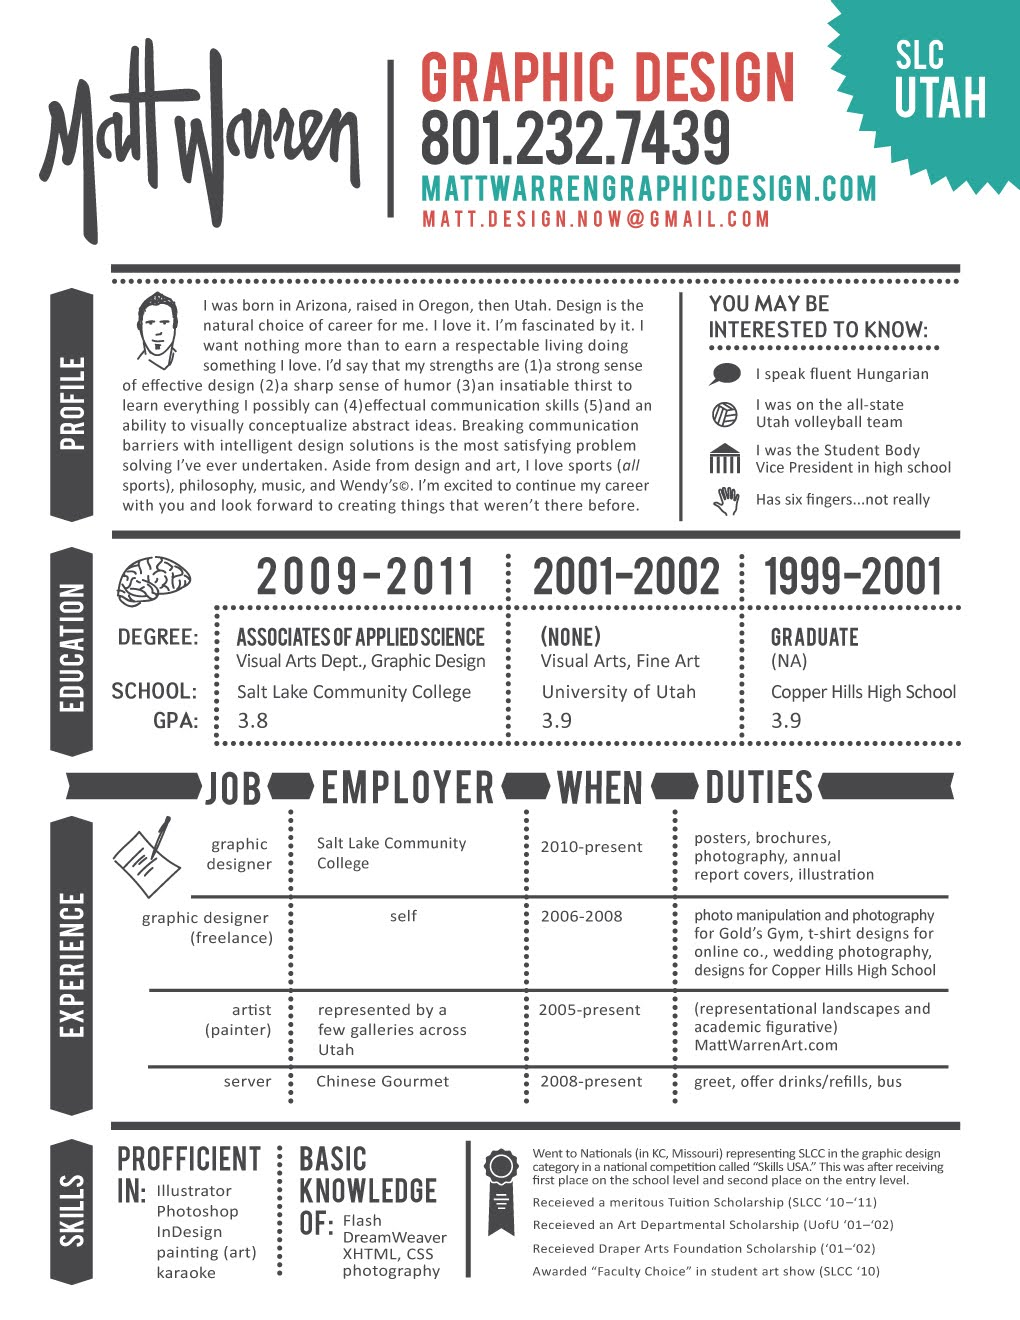 Opposenewapstandardsus  Seductive  Images About Hire Me On Pinterest  Graphic Designer Resume  With Hot  Images About Hire Me On Pinterest  Graphic Designer Resume Resume Design And Resume With Astonishing Social Worker Resume Examples Also Templates For Resumes Free In Addition What Should Be Included On A Resume And Example Of A Federal Resume As Well As Resume Child Care Additionally Housekeeping Resume Samples From Pinterestcom With Opposenewapstandardsus  Hot  Images About Hire Me On Pinterest  Graphic Designer Resume  With Astonishing  Images About Hire Me On Pinterest  Graphic Designer Resume Resume Design And Resume And Seductive Social Worker Resume Examples Also Templates For Resumes Free In Addition What Should Be Included On A Resume From Pinterestcom